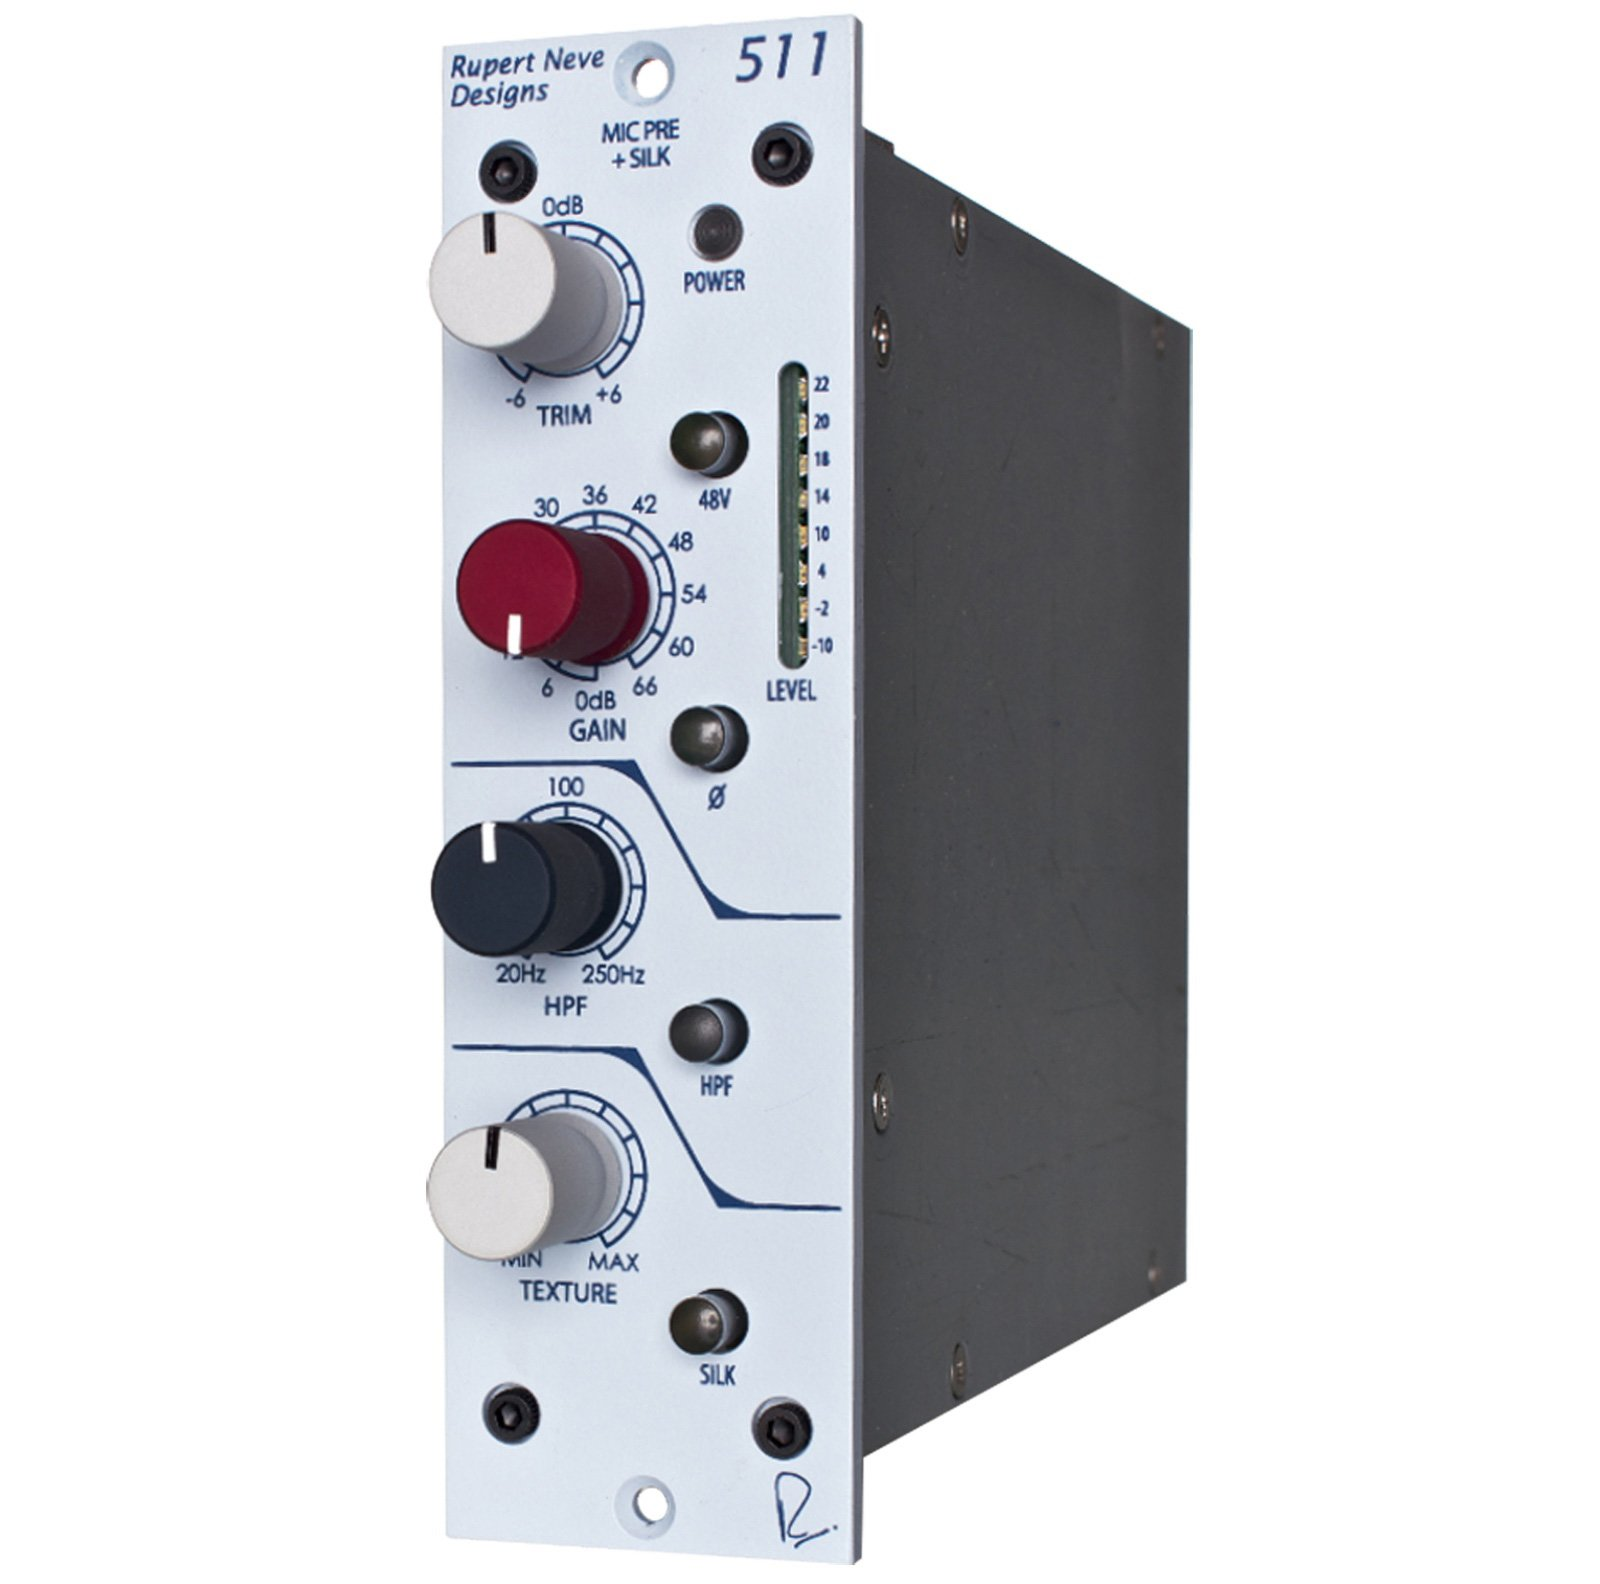 500 Series Microphone Preamp with Variable Silk/Texture, Sweepable High Pass Filter